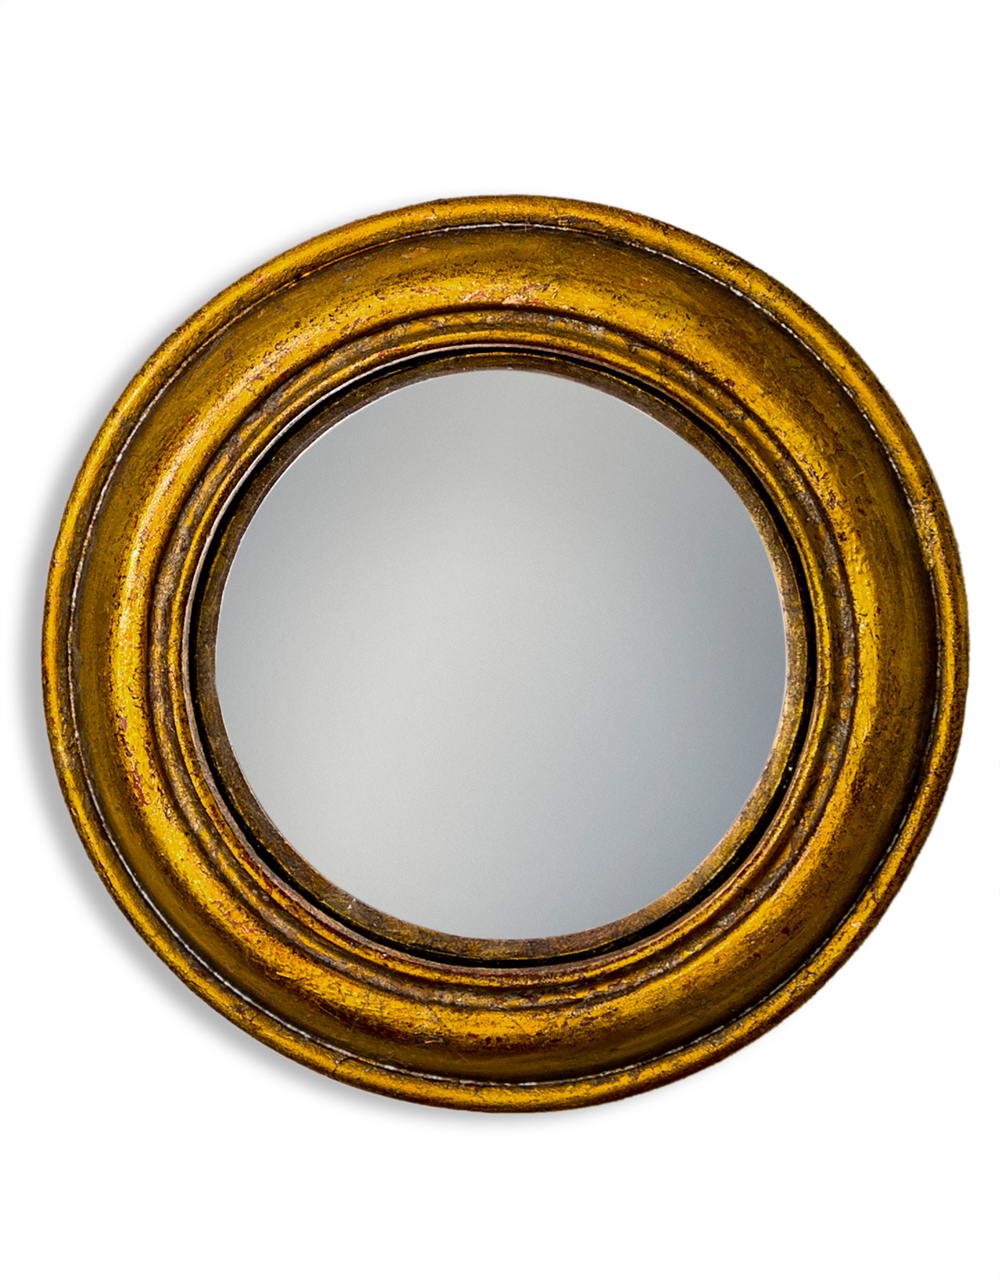 Gold Rounded Small Convex Mirror